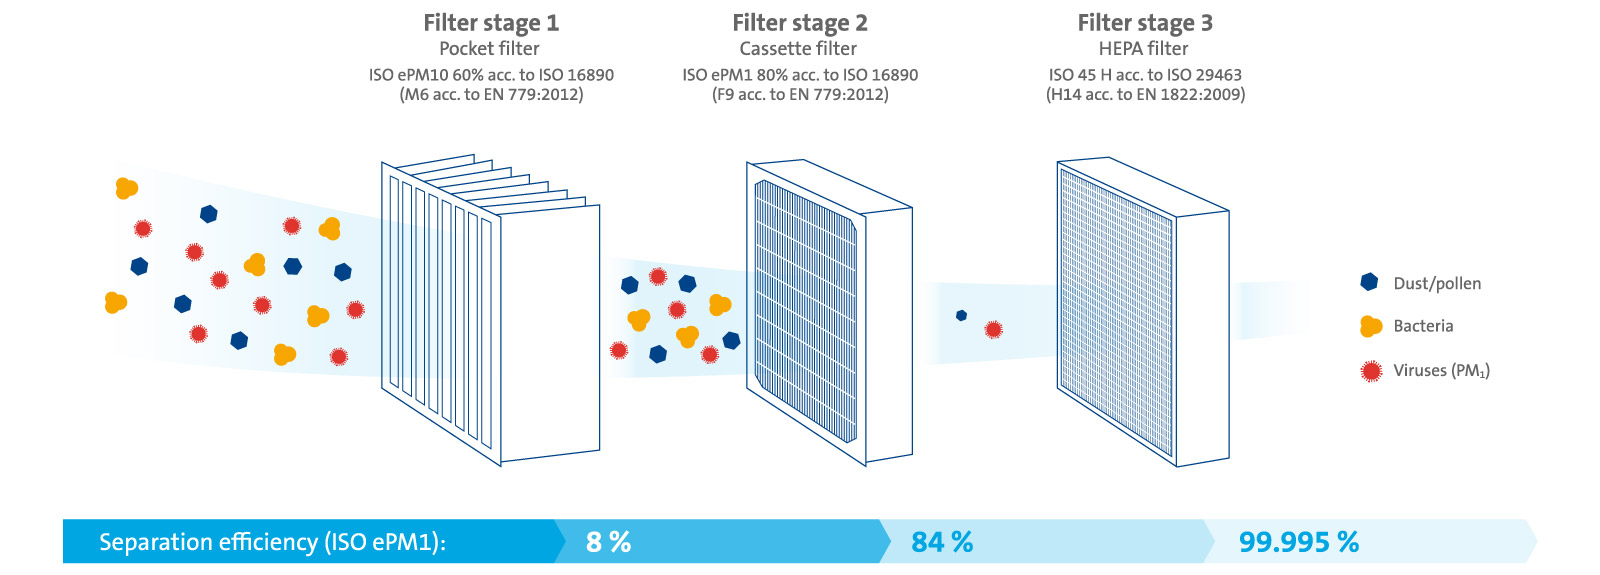 Filter stages and separation efficiencies